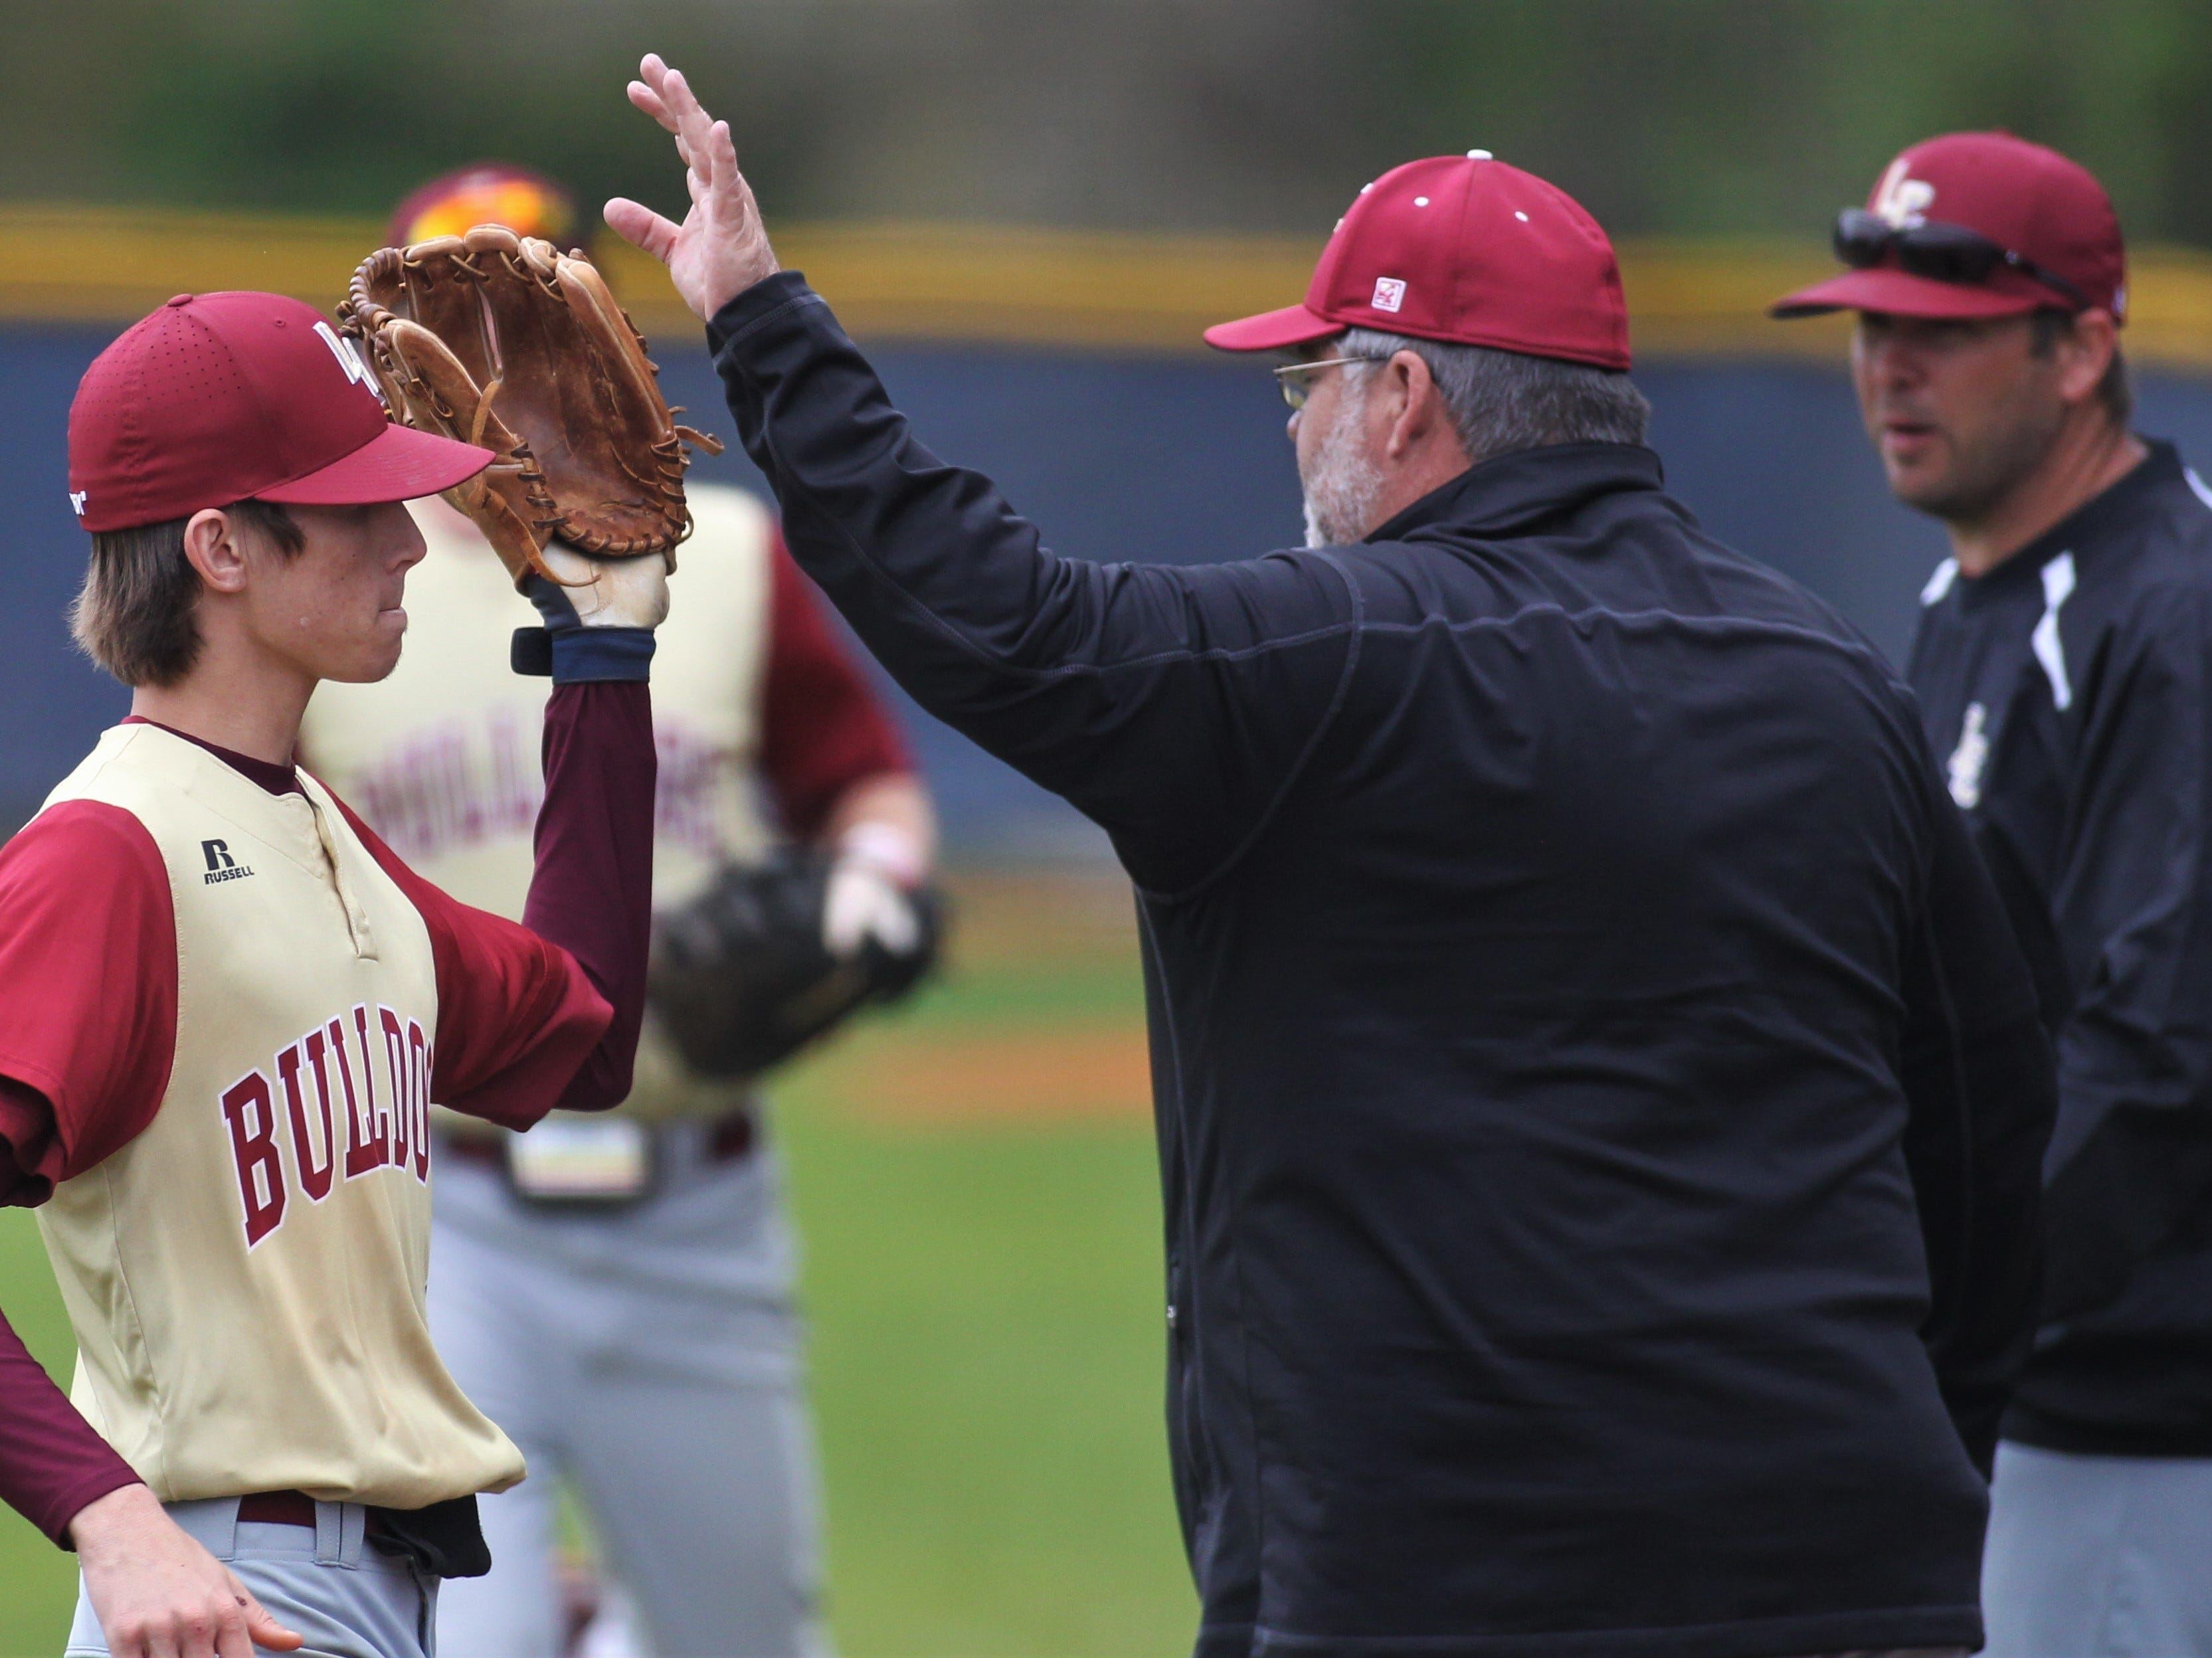 Liberty County starting pitcher Brent Fant is met by an assistant coach after a successful first inning as Liberty County's baseball team went on the road to beat Maclay 8-2 on Saturday, March 16, 2019. The Bulldogs played their first game following their head coach Corey Crum's tragic death six days ago.